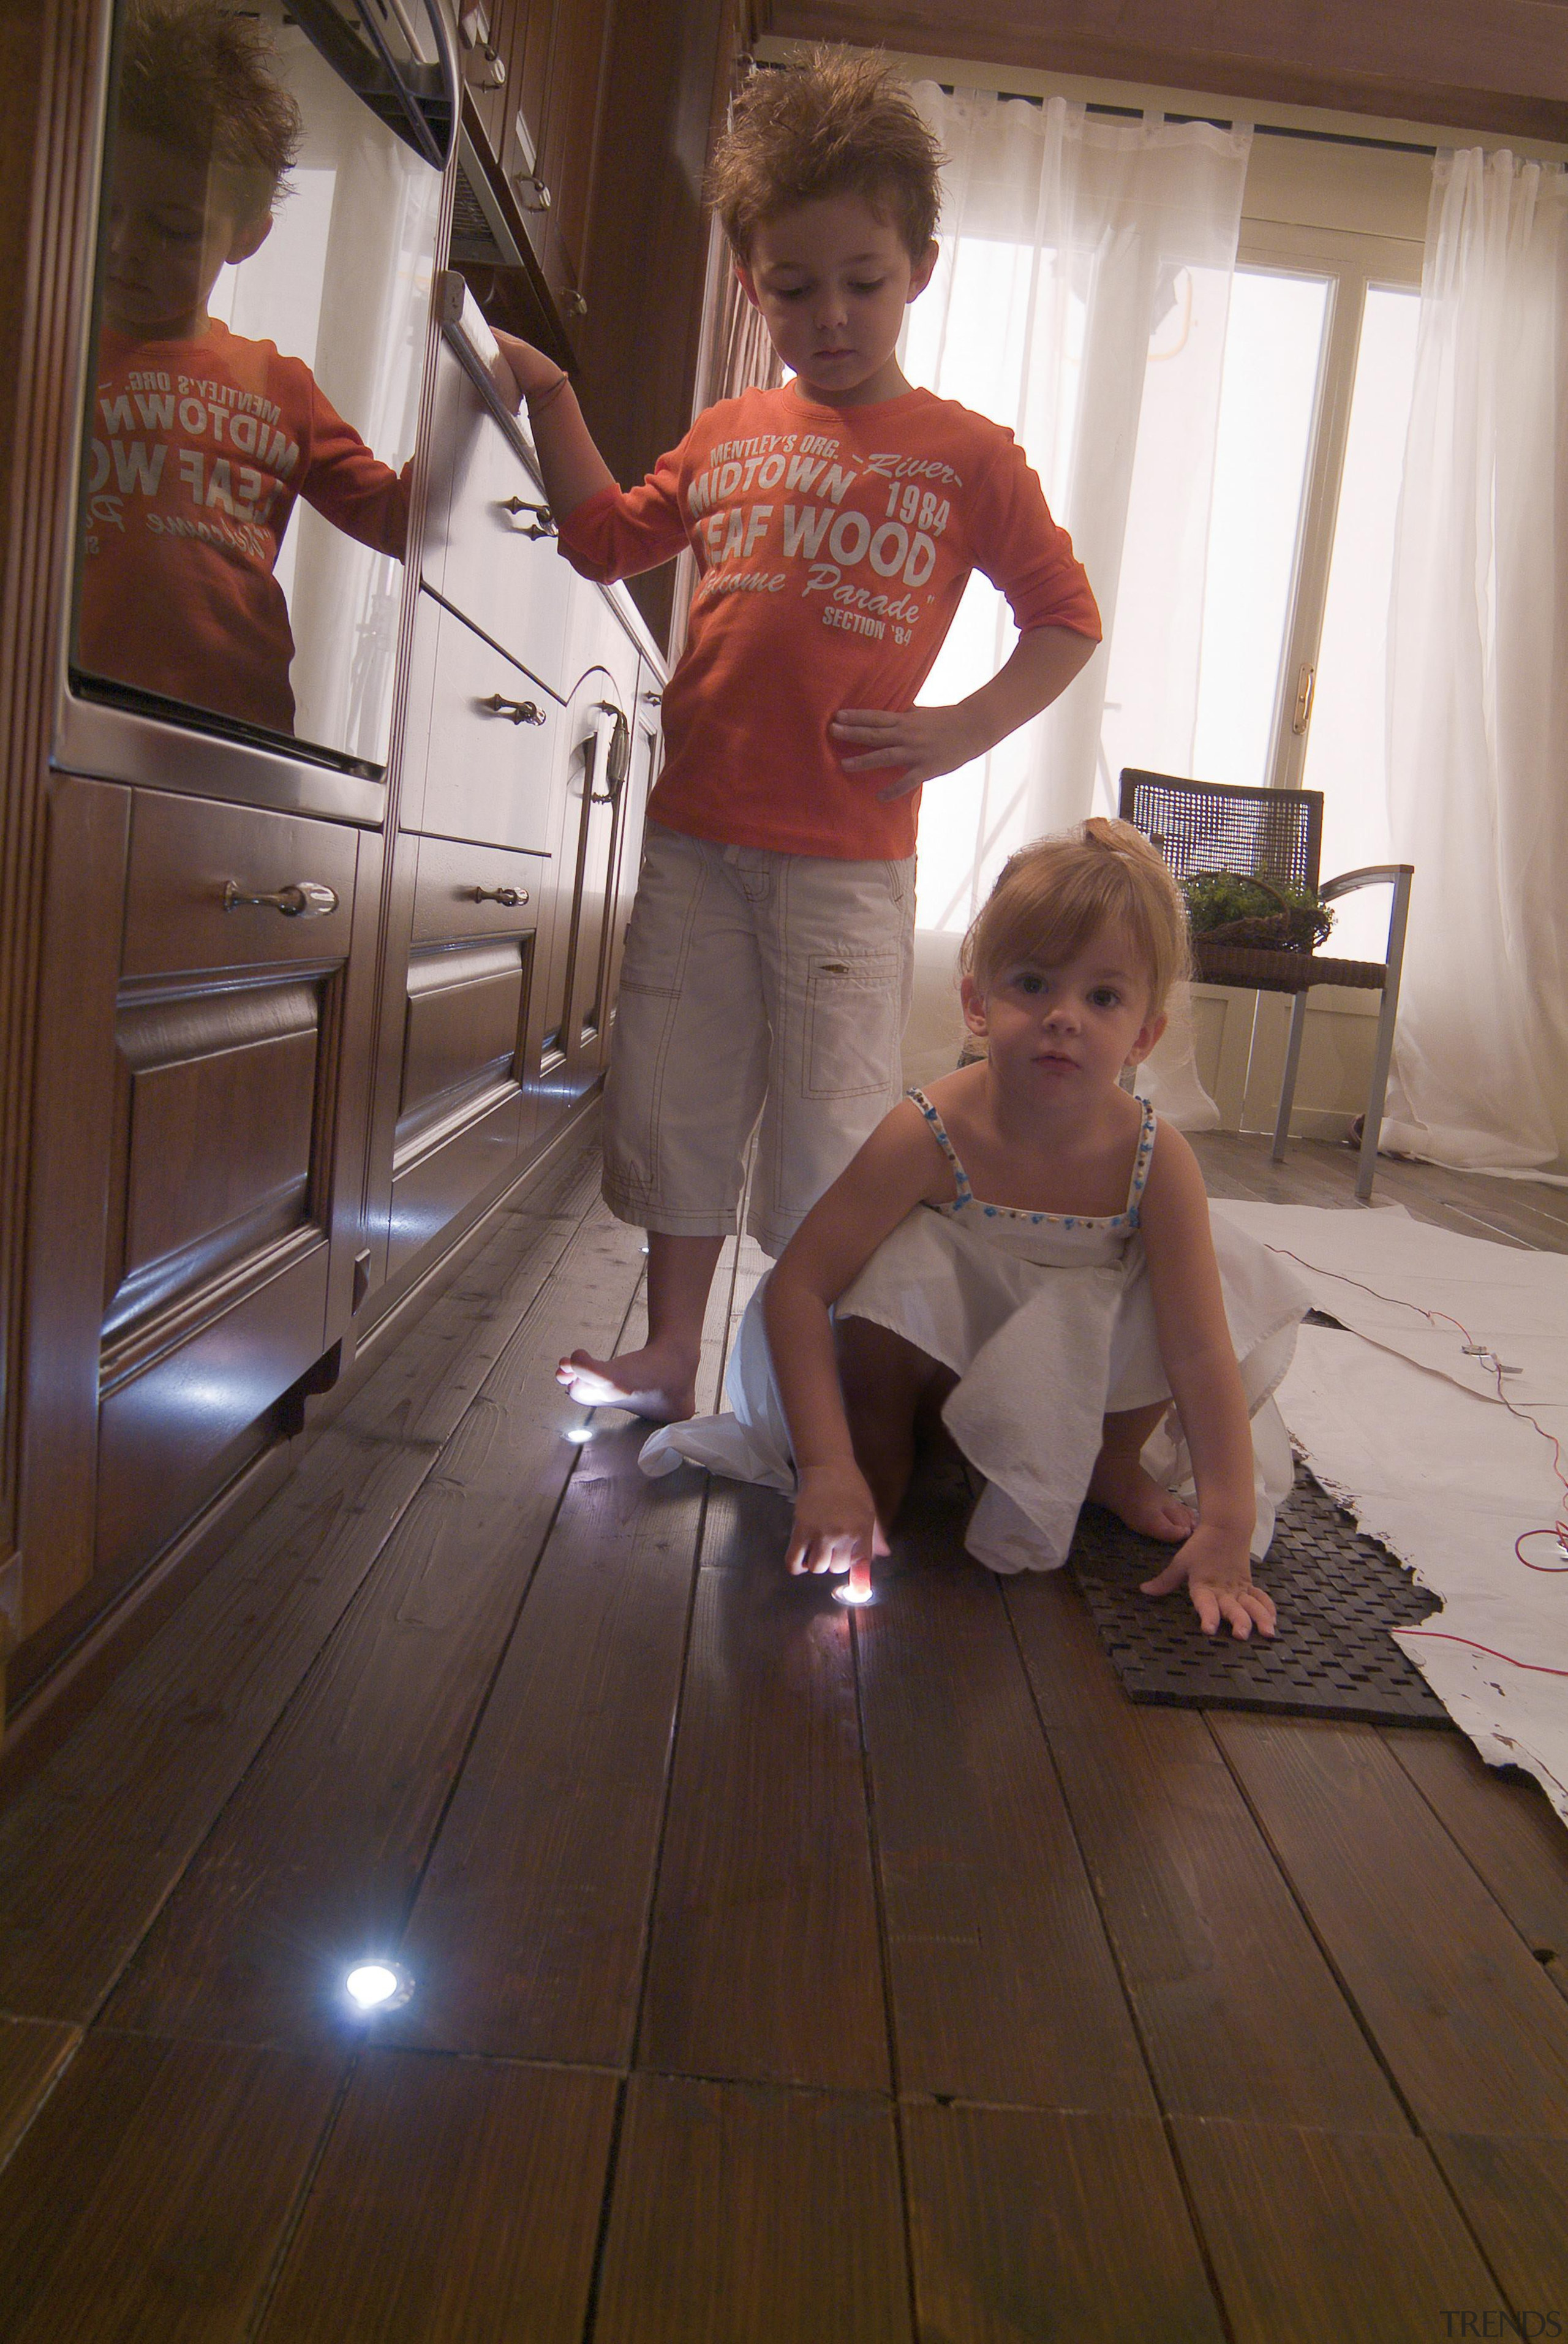 LED Lights - child | day | floor child, day, floor, flooring, fun, girl, hardwood, house, human body, leg, room, shoulder, sitting, standing, trunk, wood, wood flooring, brown, gray